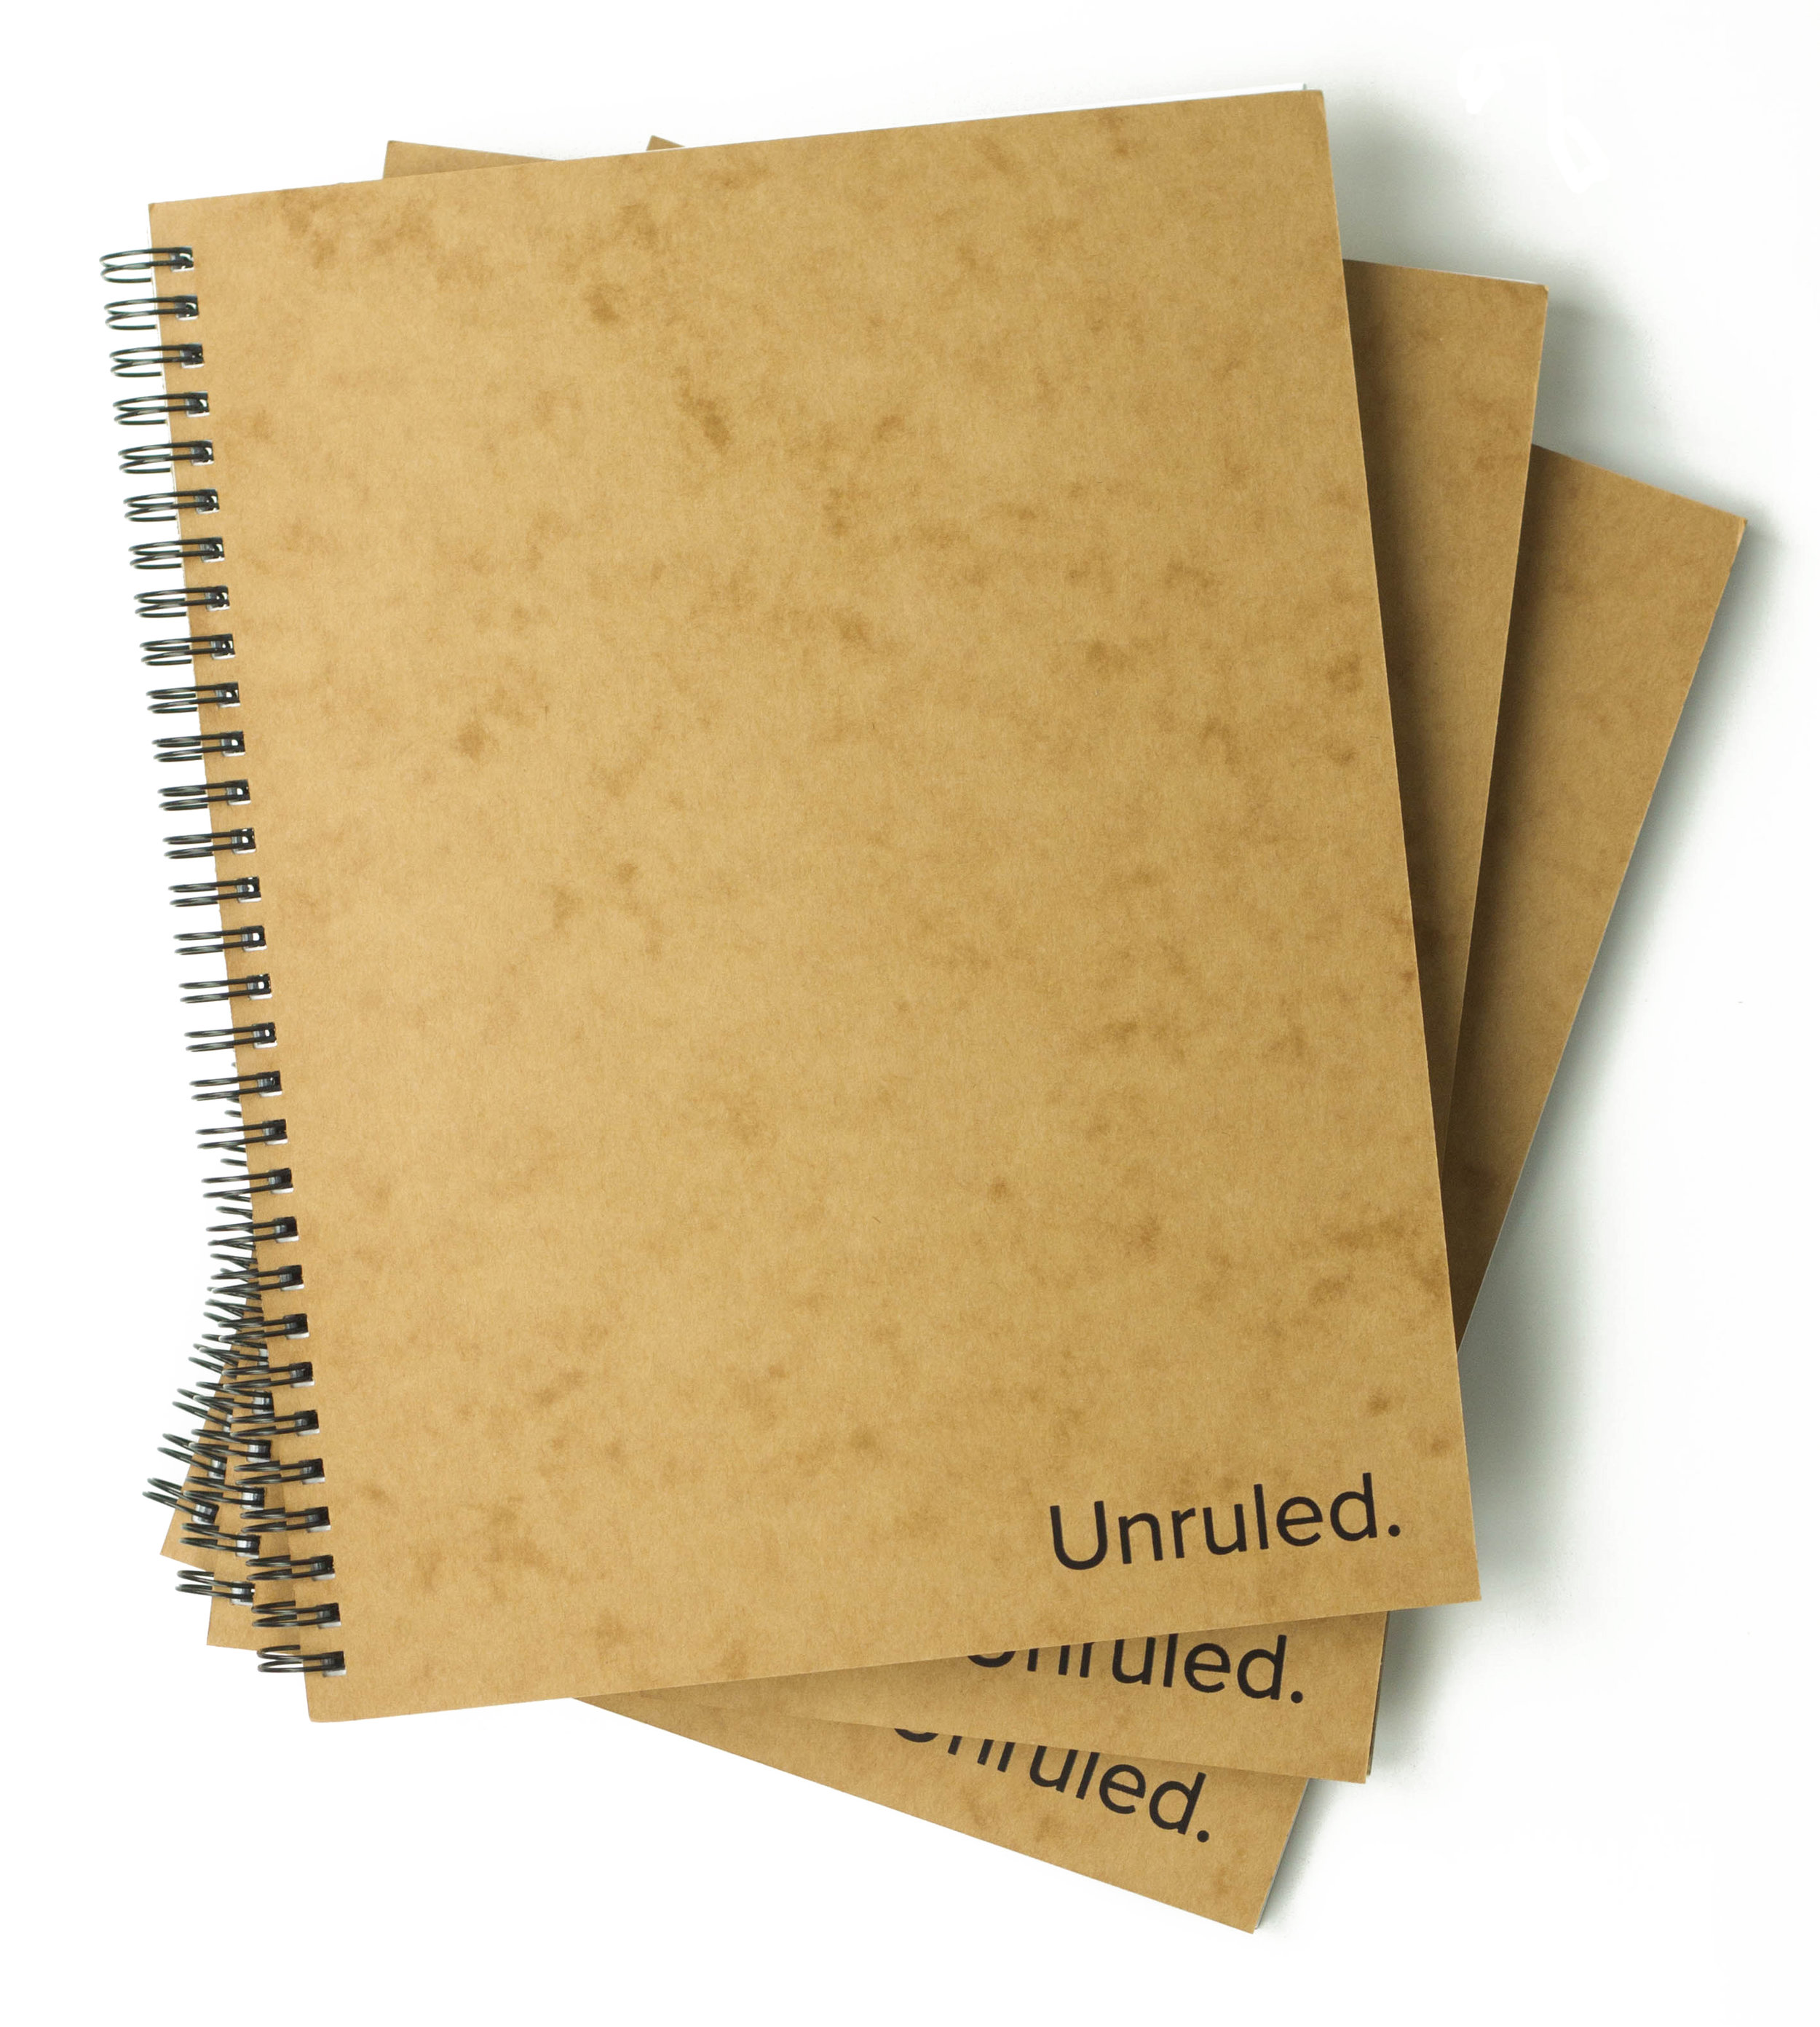 Ready to kickstart your creativity? Help yourself while helping the planet with the Unruled Notebook. -